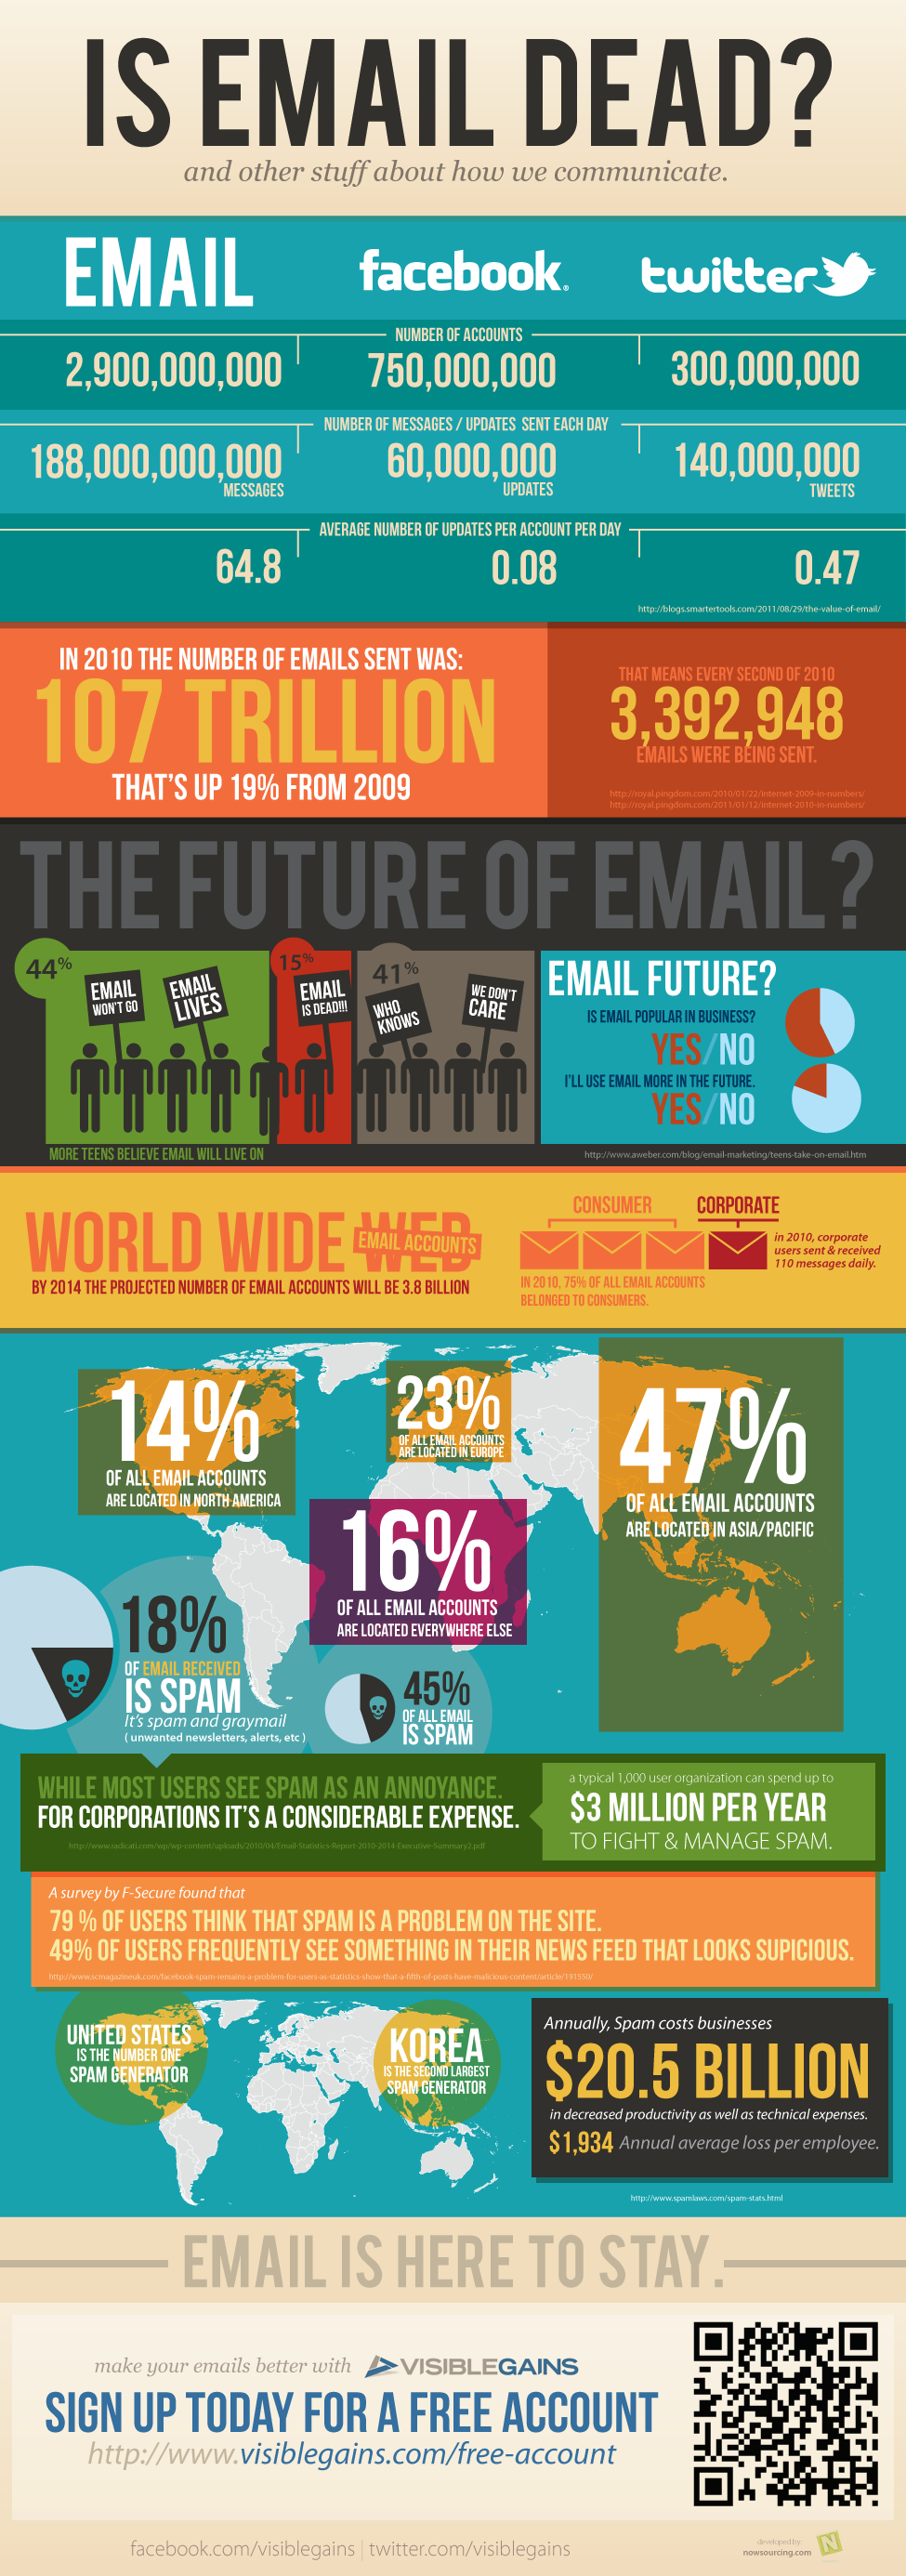 VGEmailDead The Future of Email Marketing